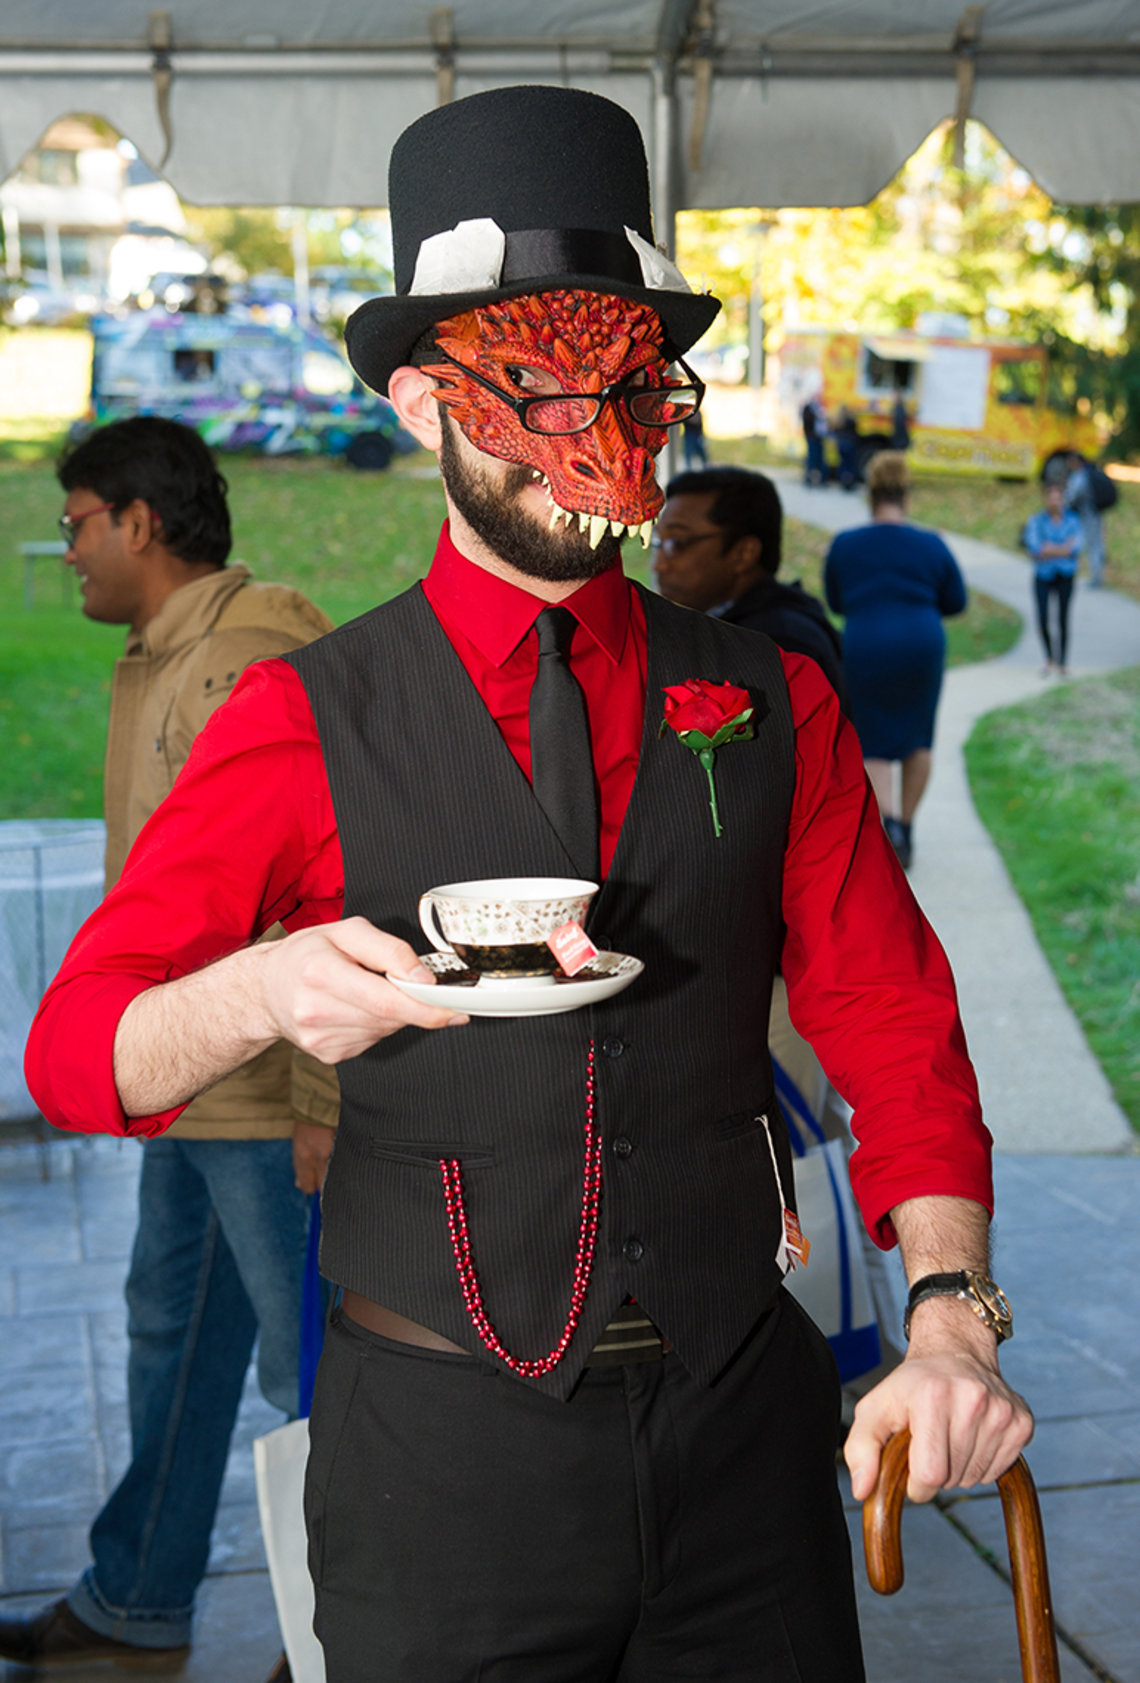 An NIH'er dressed in red and black and monster mask leans on a cane, holds a cup of tea